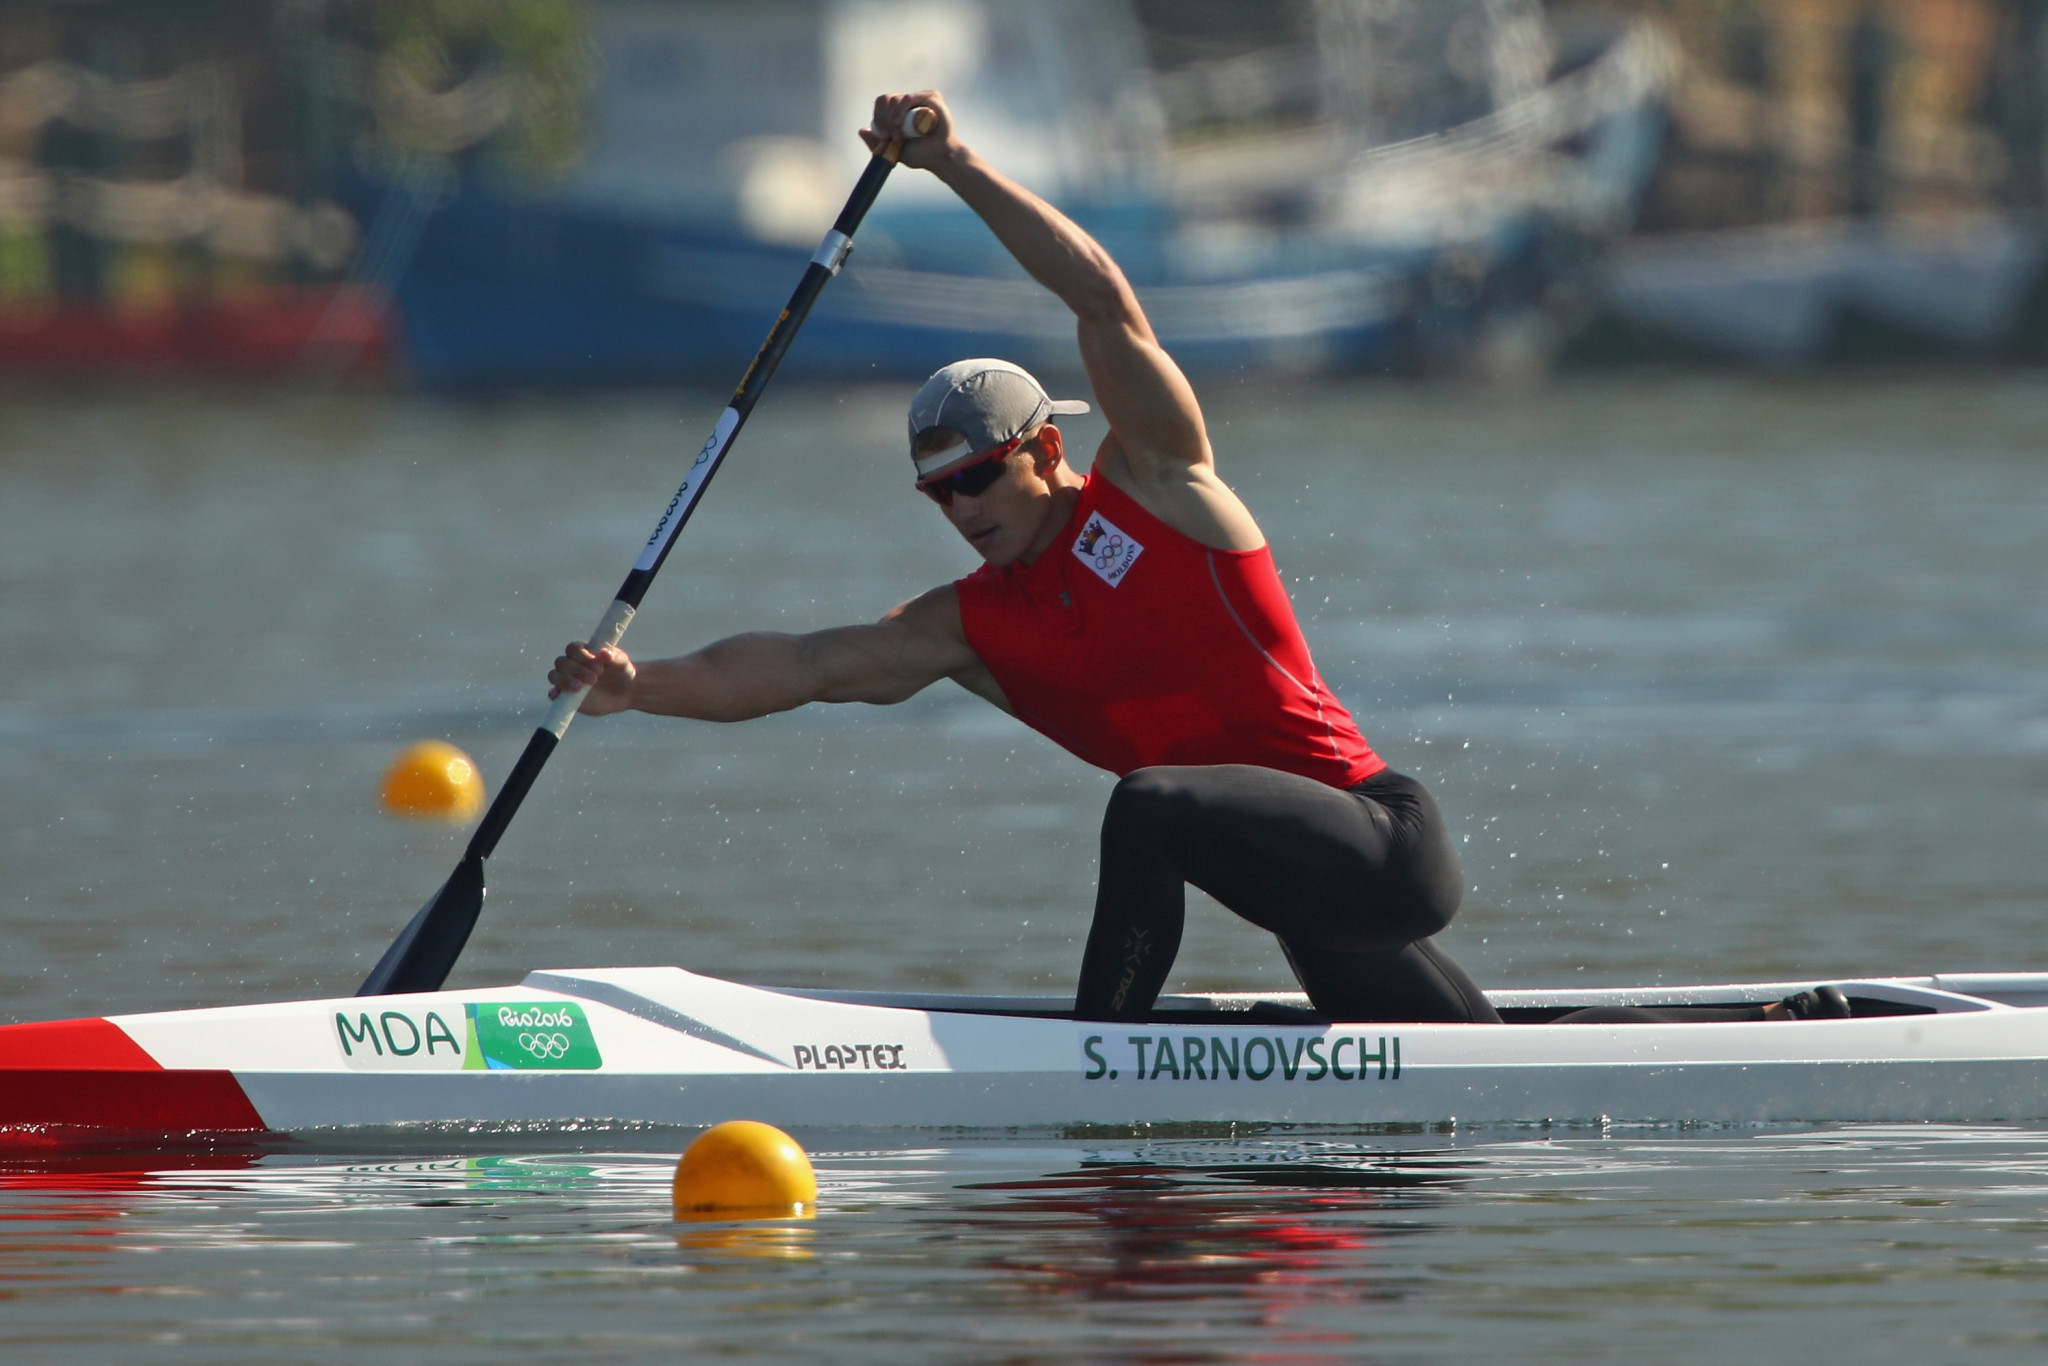 Canoe and kayak finalists confirmed at Szeged Canoe Sprint World Cup